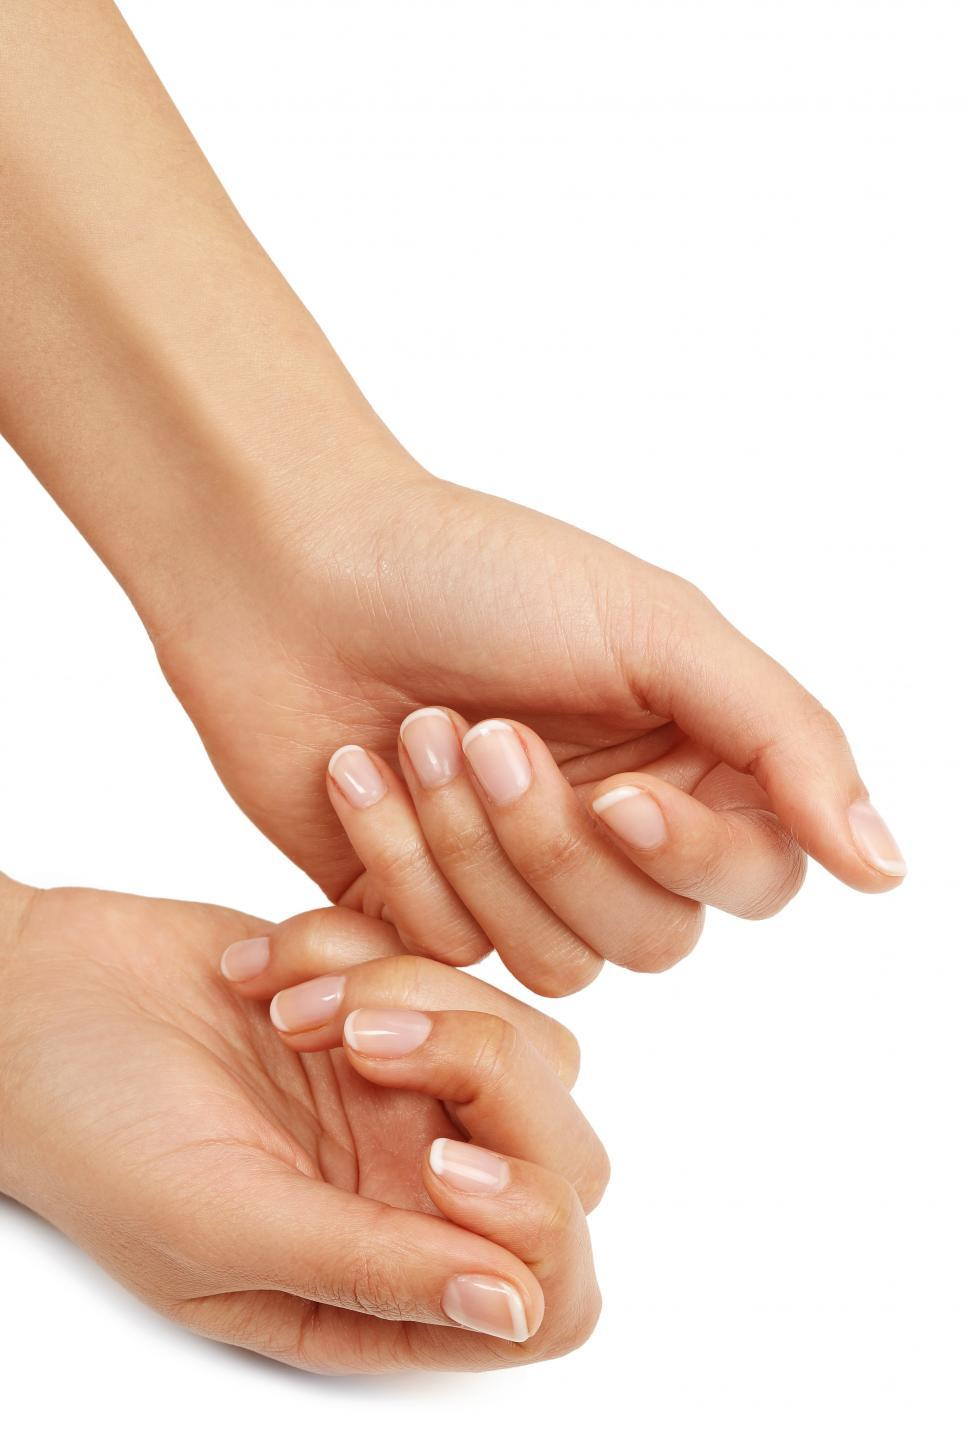 Download Free Stock Photo of Manicure